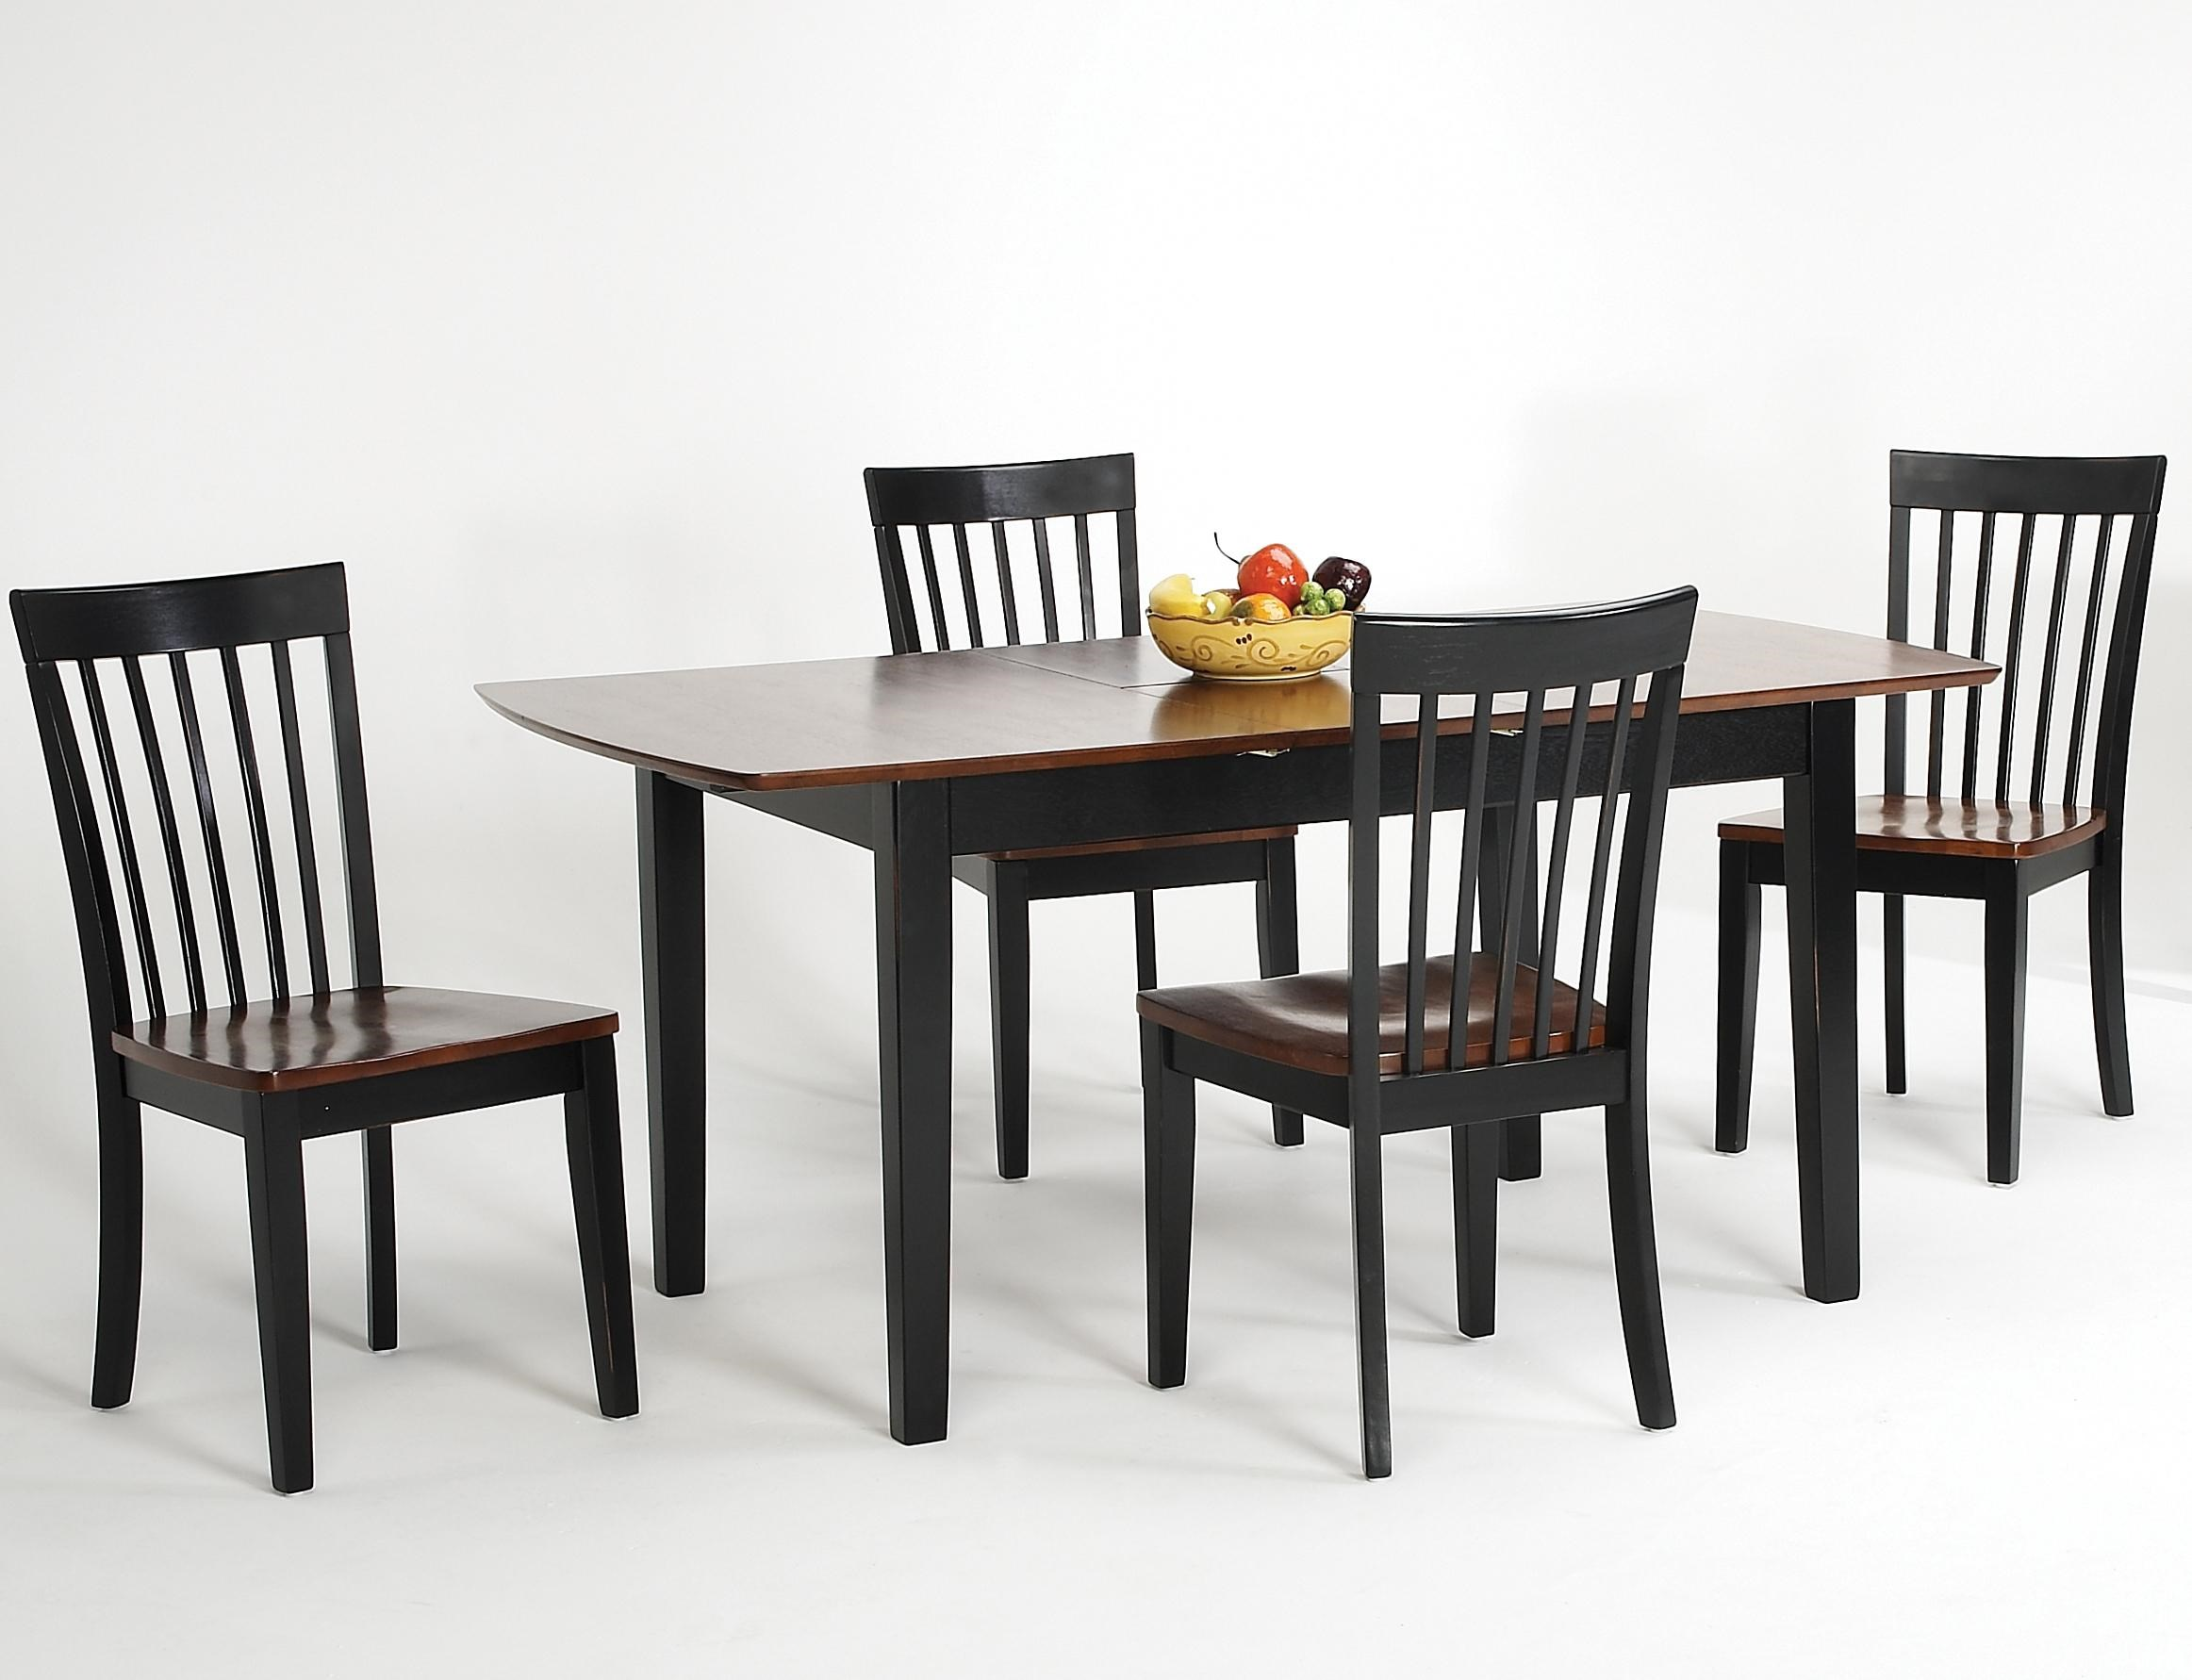 Attractive Amesbury Chair Newbury And Kensington Contemporary Dining Sets 5 Piece  Table And Chair Set